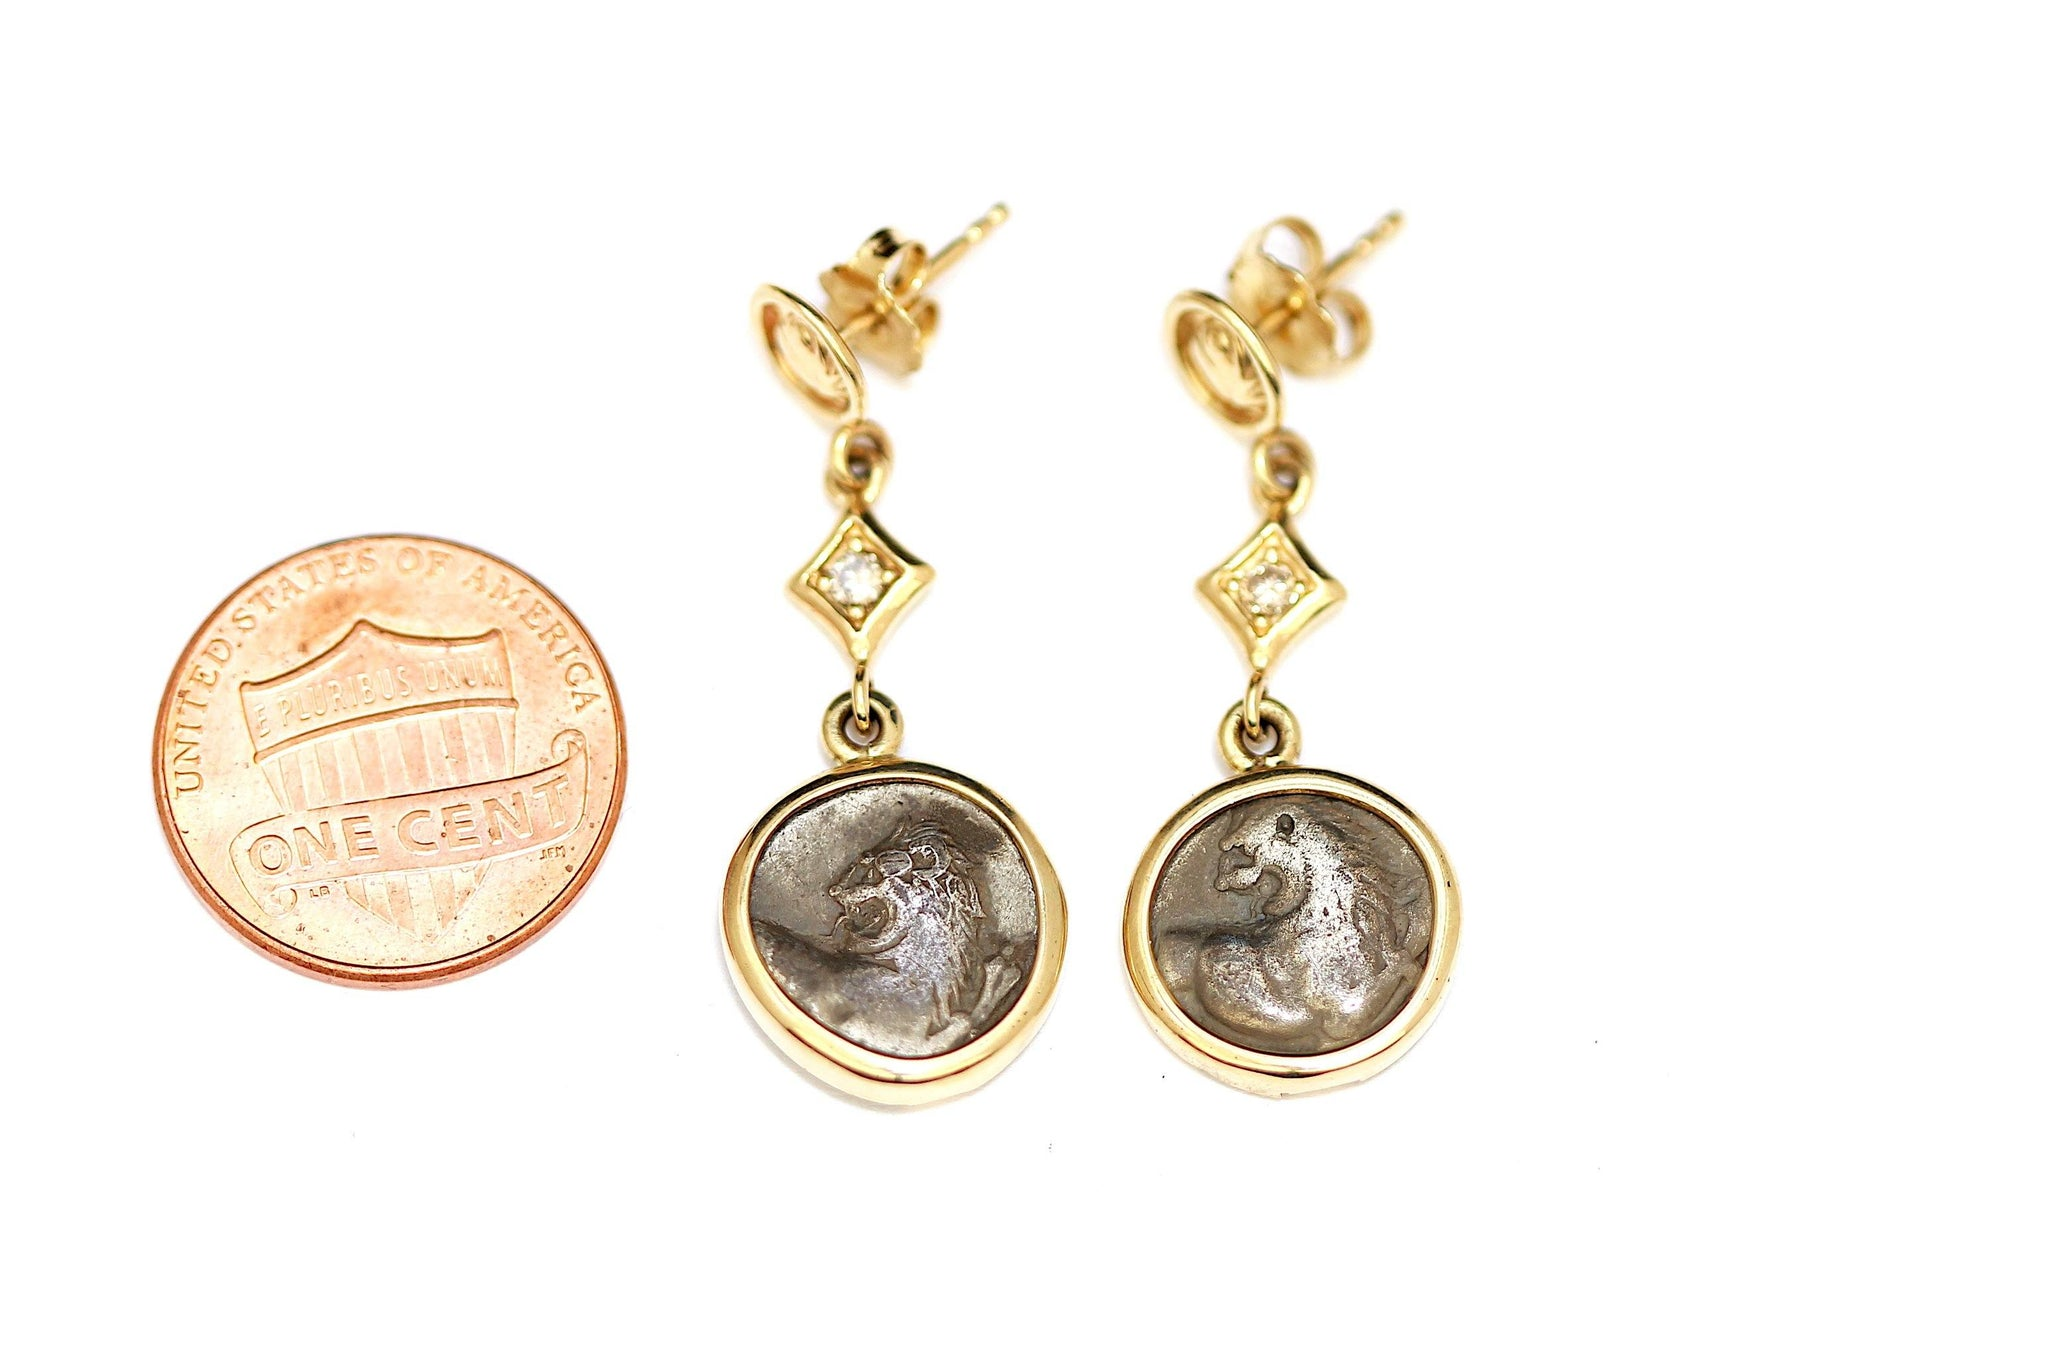 Lion of Thrace Greek Coins, 14K Gold and Diamond Earrings, Genuine Ancient Coins, with Certificate - Erez Ancient Coin Jewelry, ancient coin jewelry, men jewelry, genuine ancient coins, made in the US